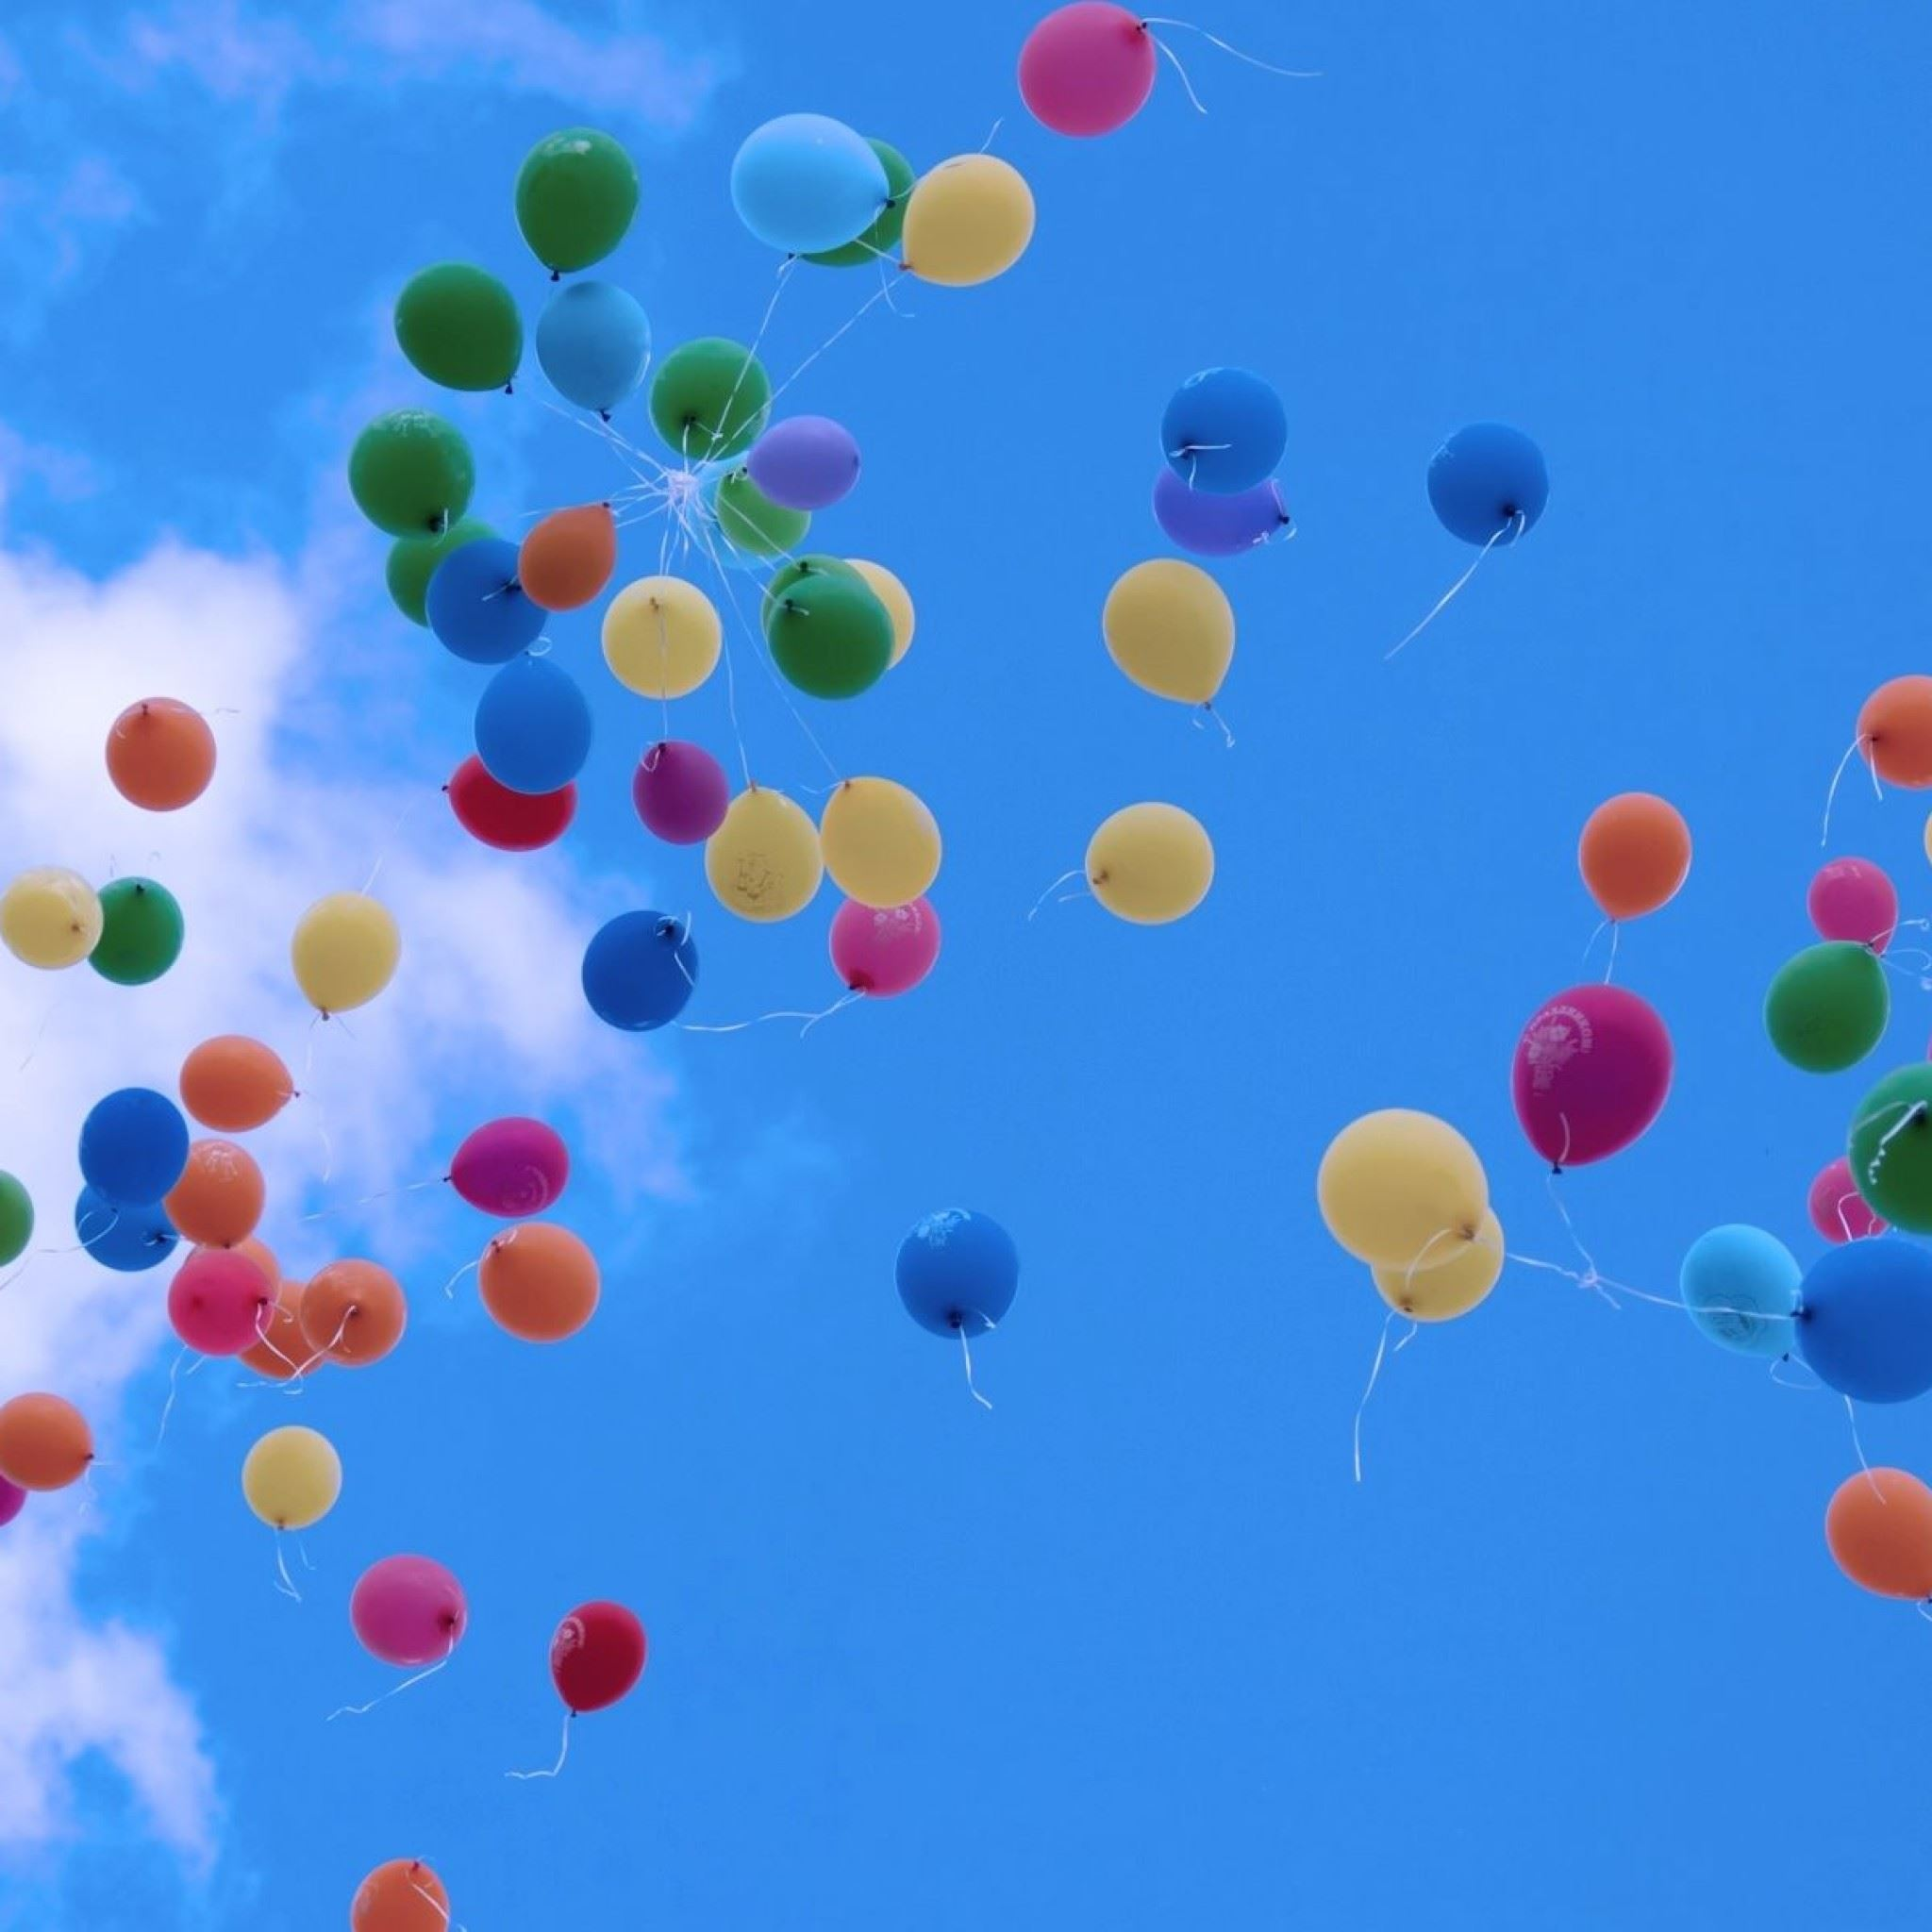 Colorful Balloons In The Sky iPad Air wallpaper